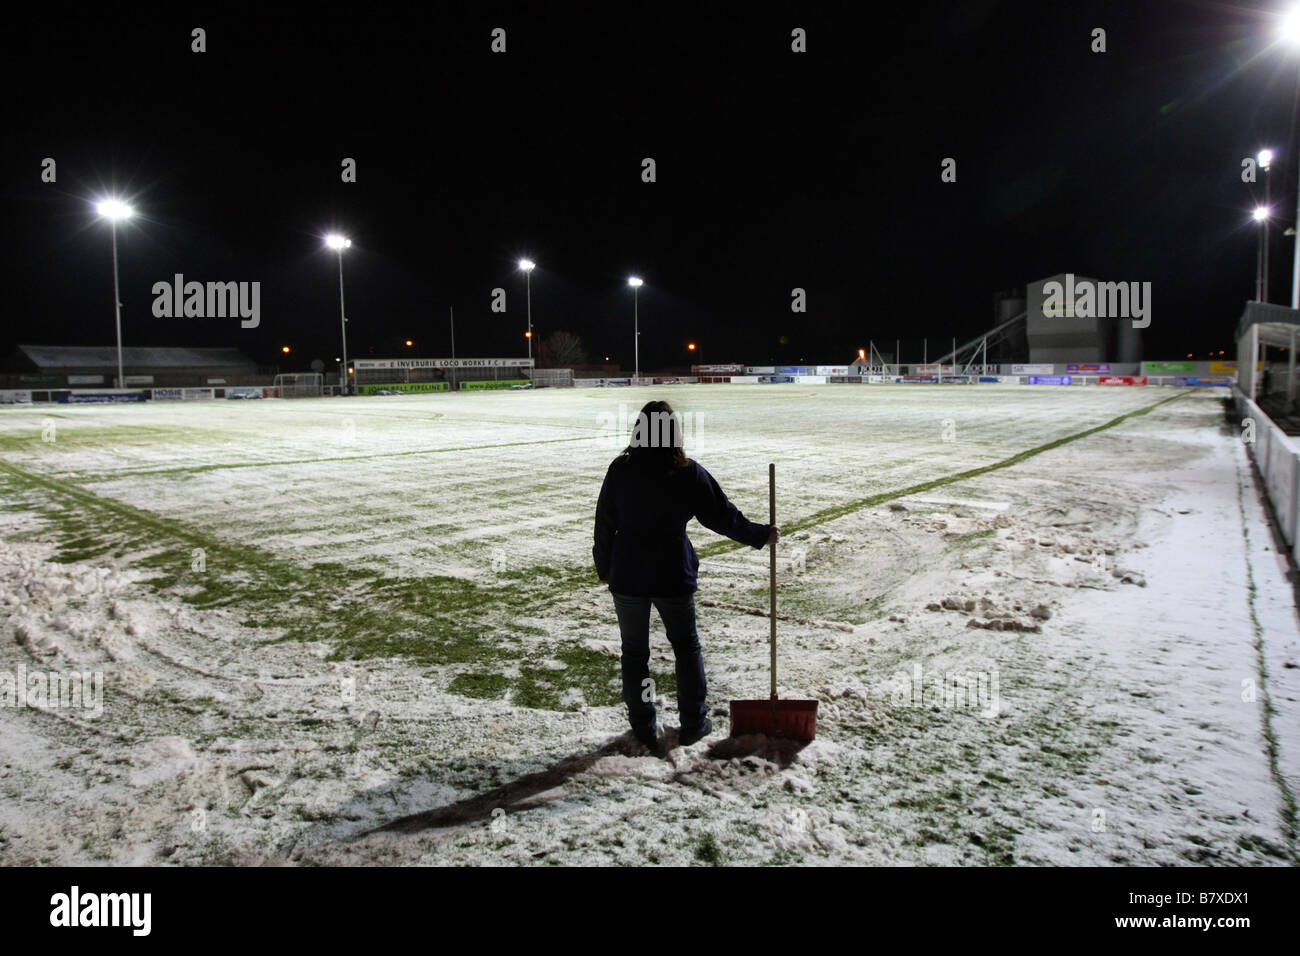 Scottish Highland League football pitch covered in snow during winter, with worker clearing lines and markers with - Stock Image